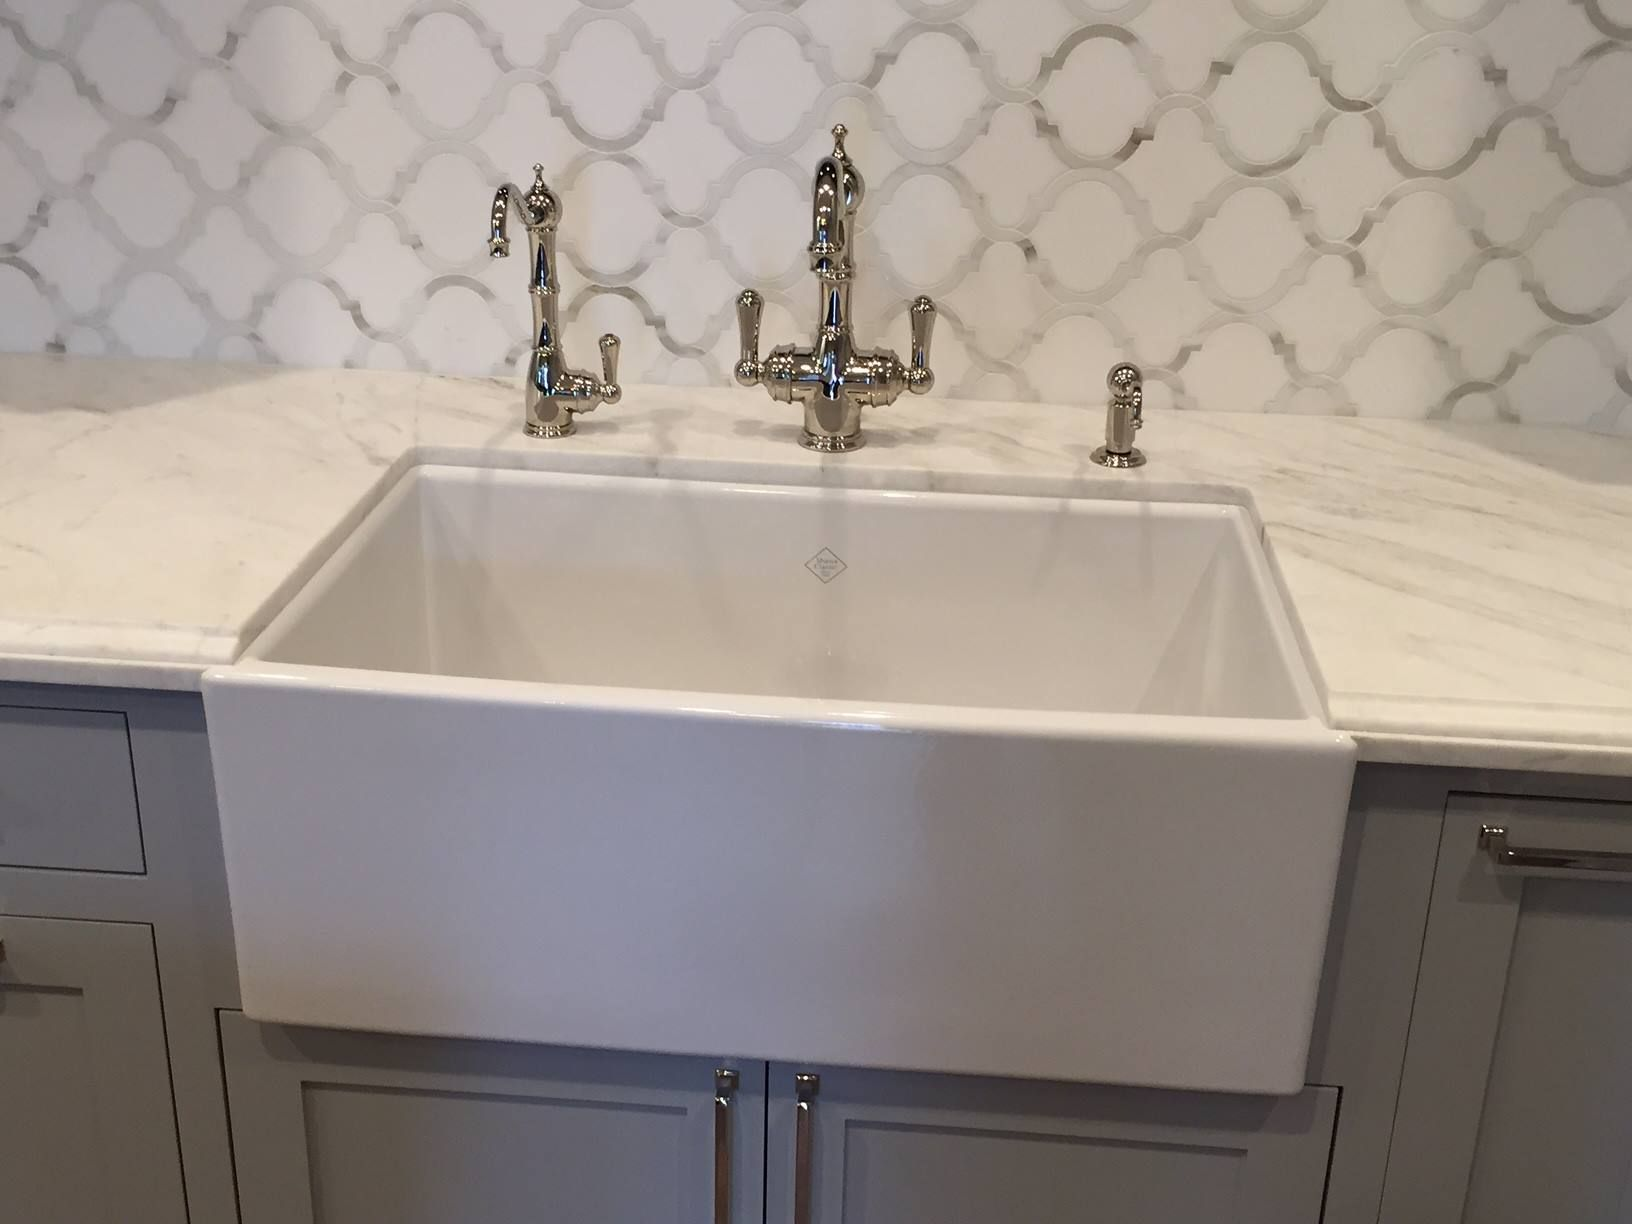 A ROHL Water appliance featuring a Shaws Farmhouse Fireclay